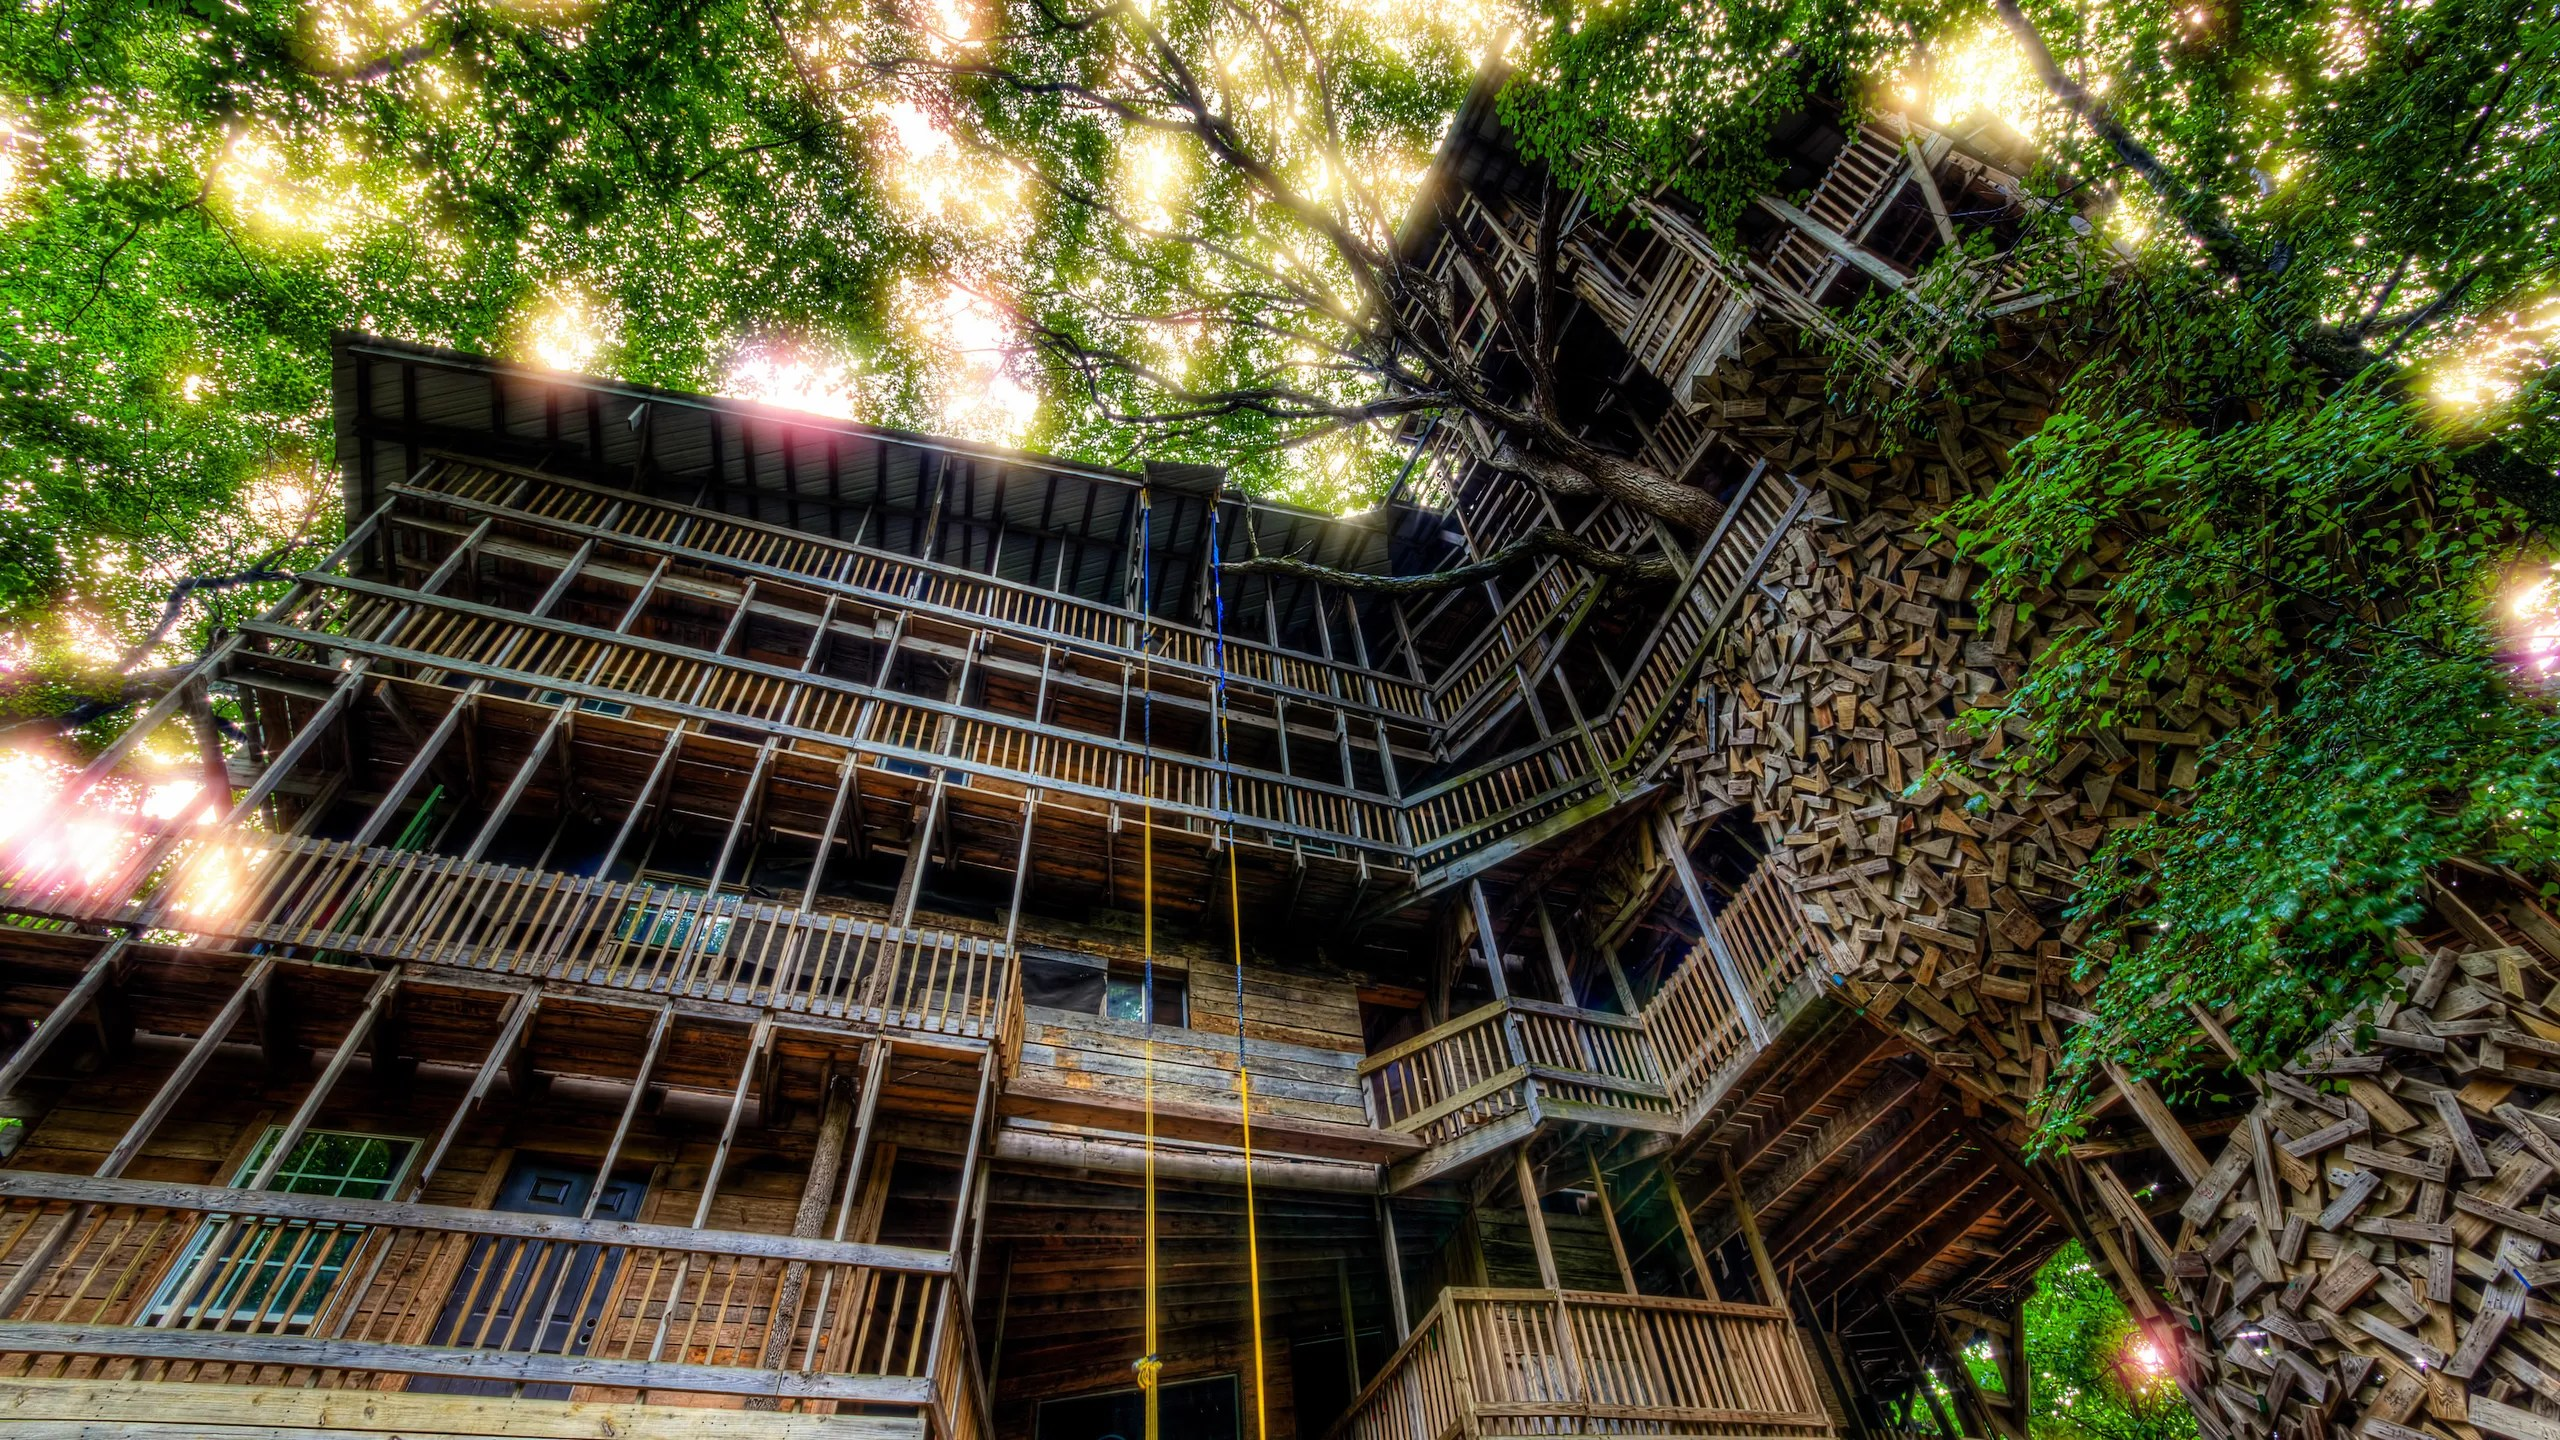 The World S Largest Treehouse Burned To The Ground In Less Than 15 Minutes Architectural Digest